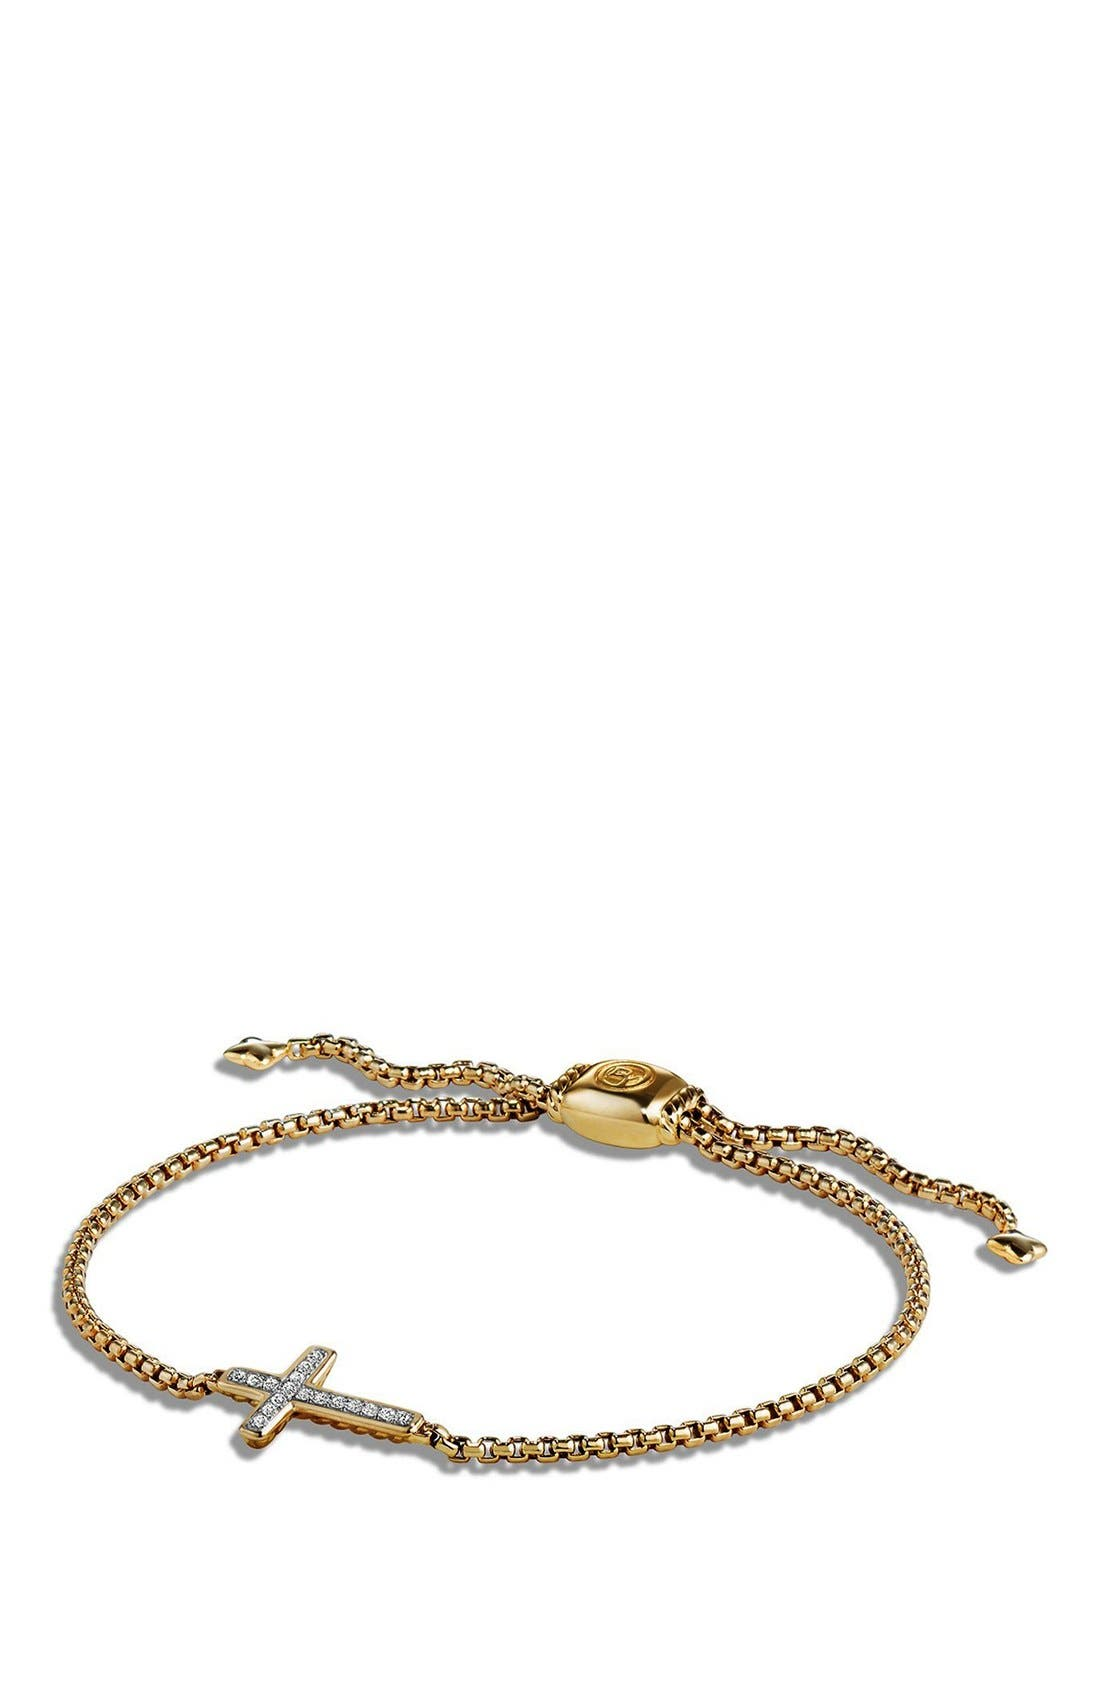 David Yurman 'Petite Pavé' Cross Bracelet with Diamonds in 18K Gold